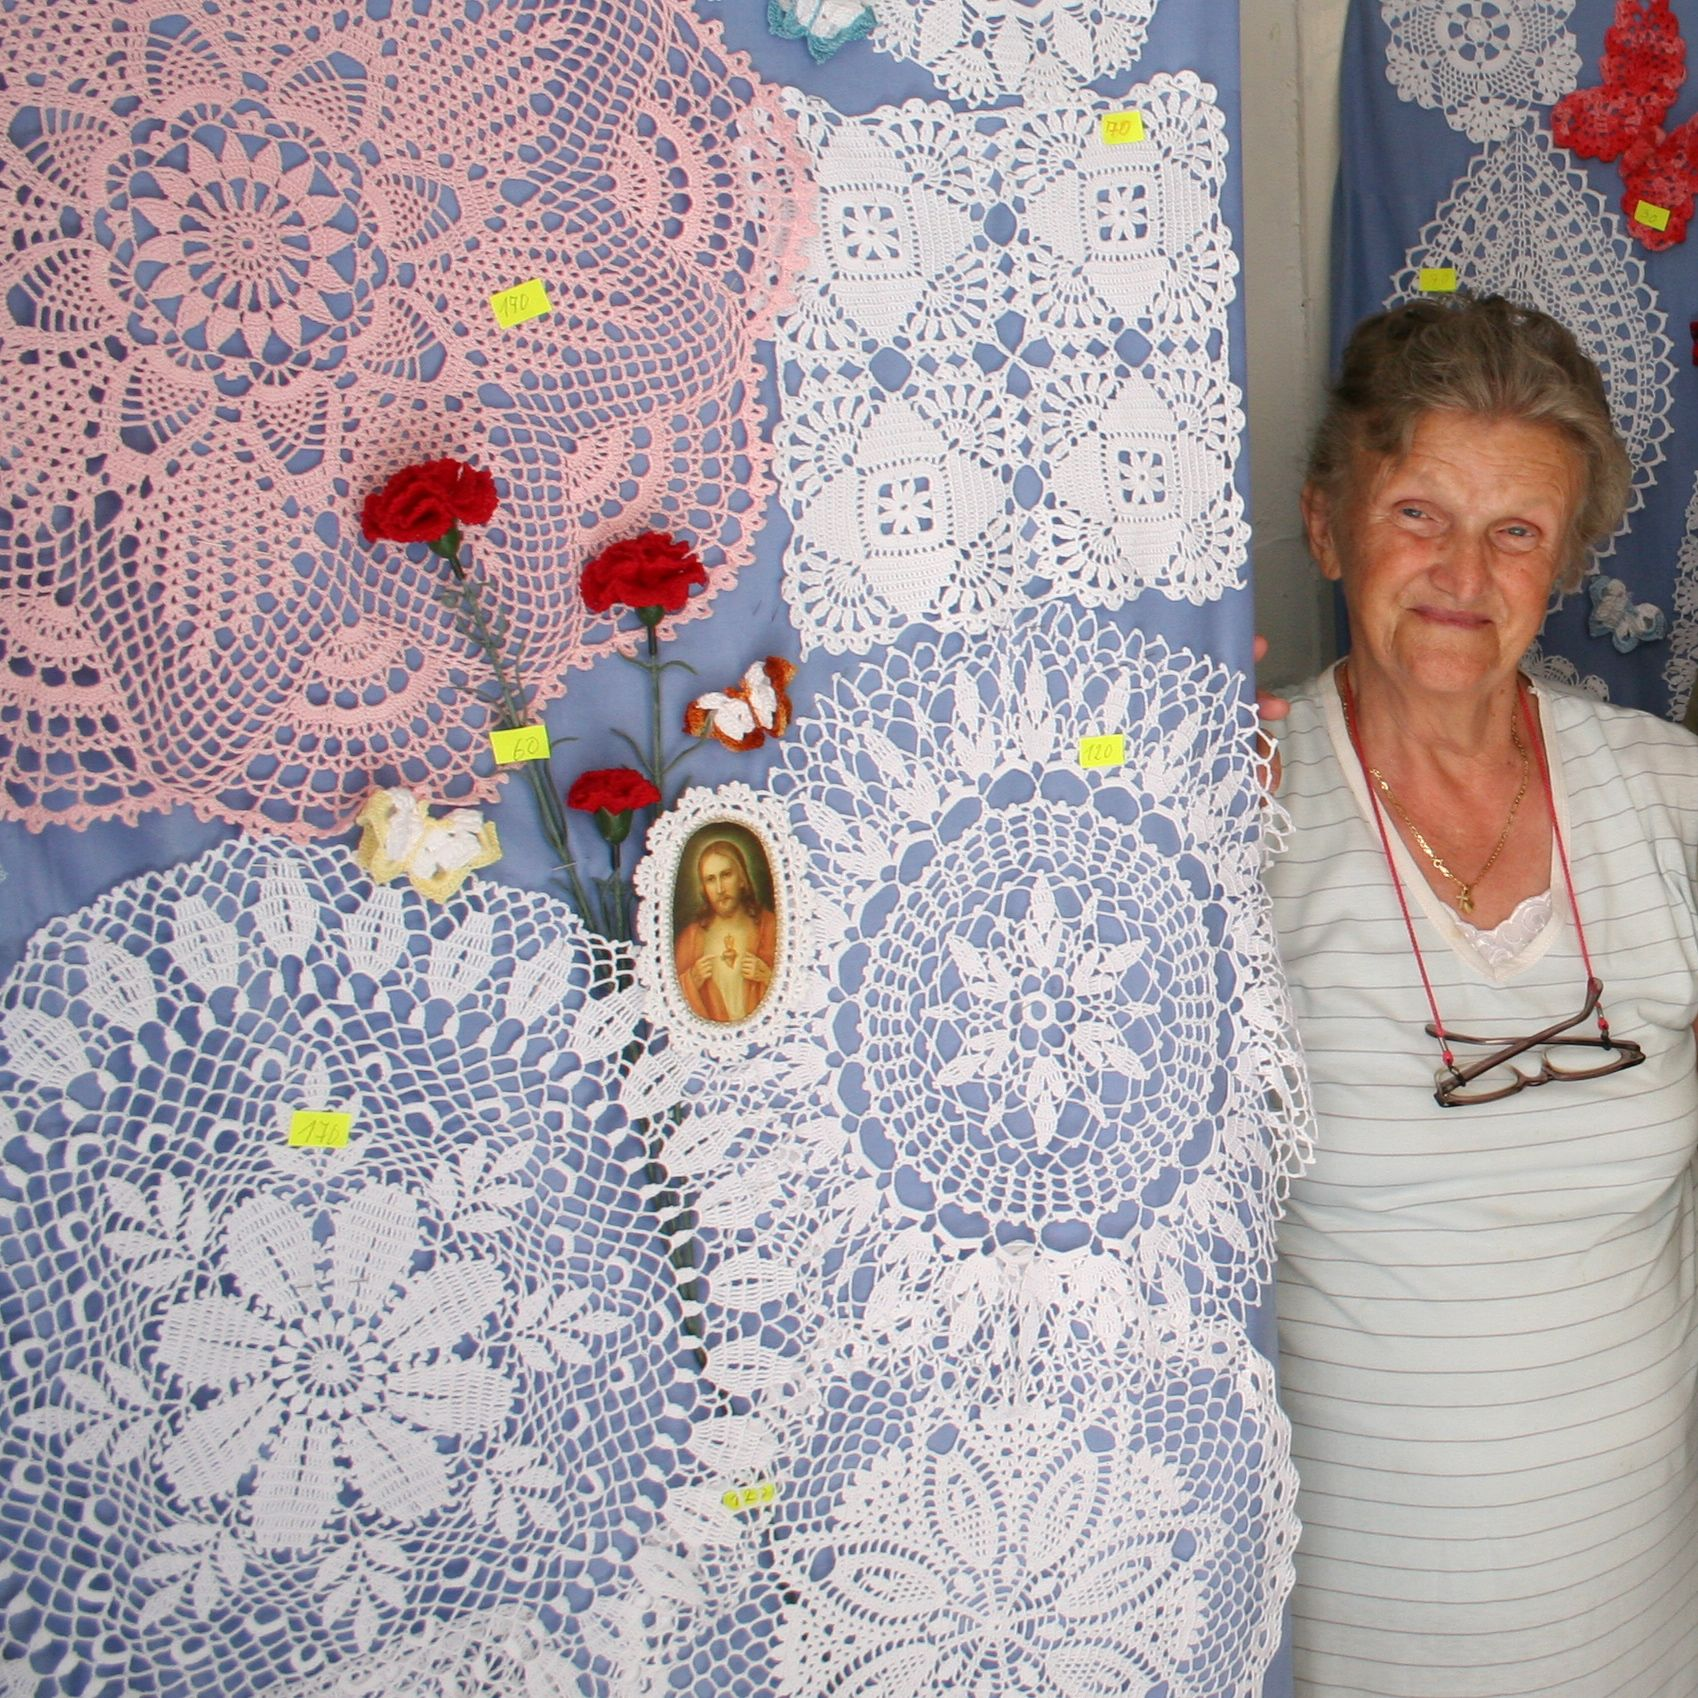 Crochet Work : Master Craftswoman of Crochet in Porec, Istria Ruth E Hendricks ...